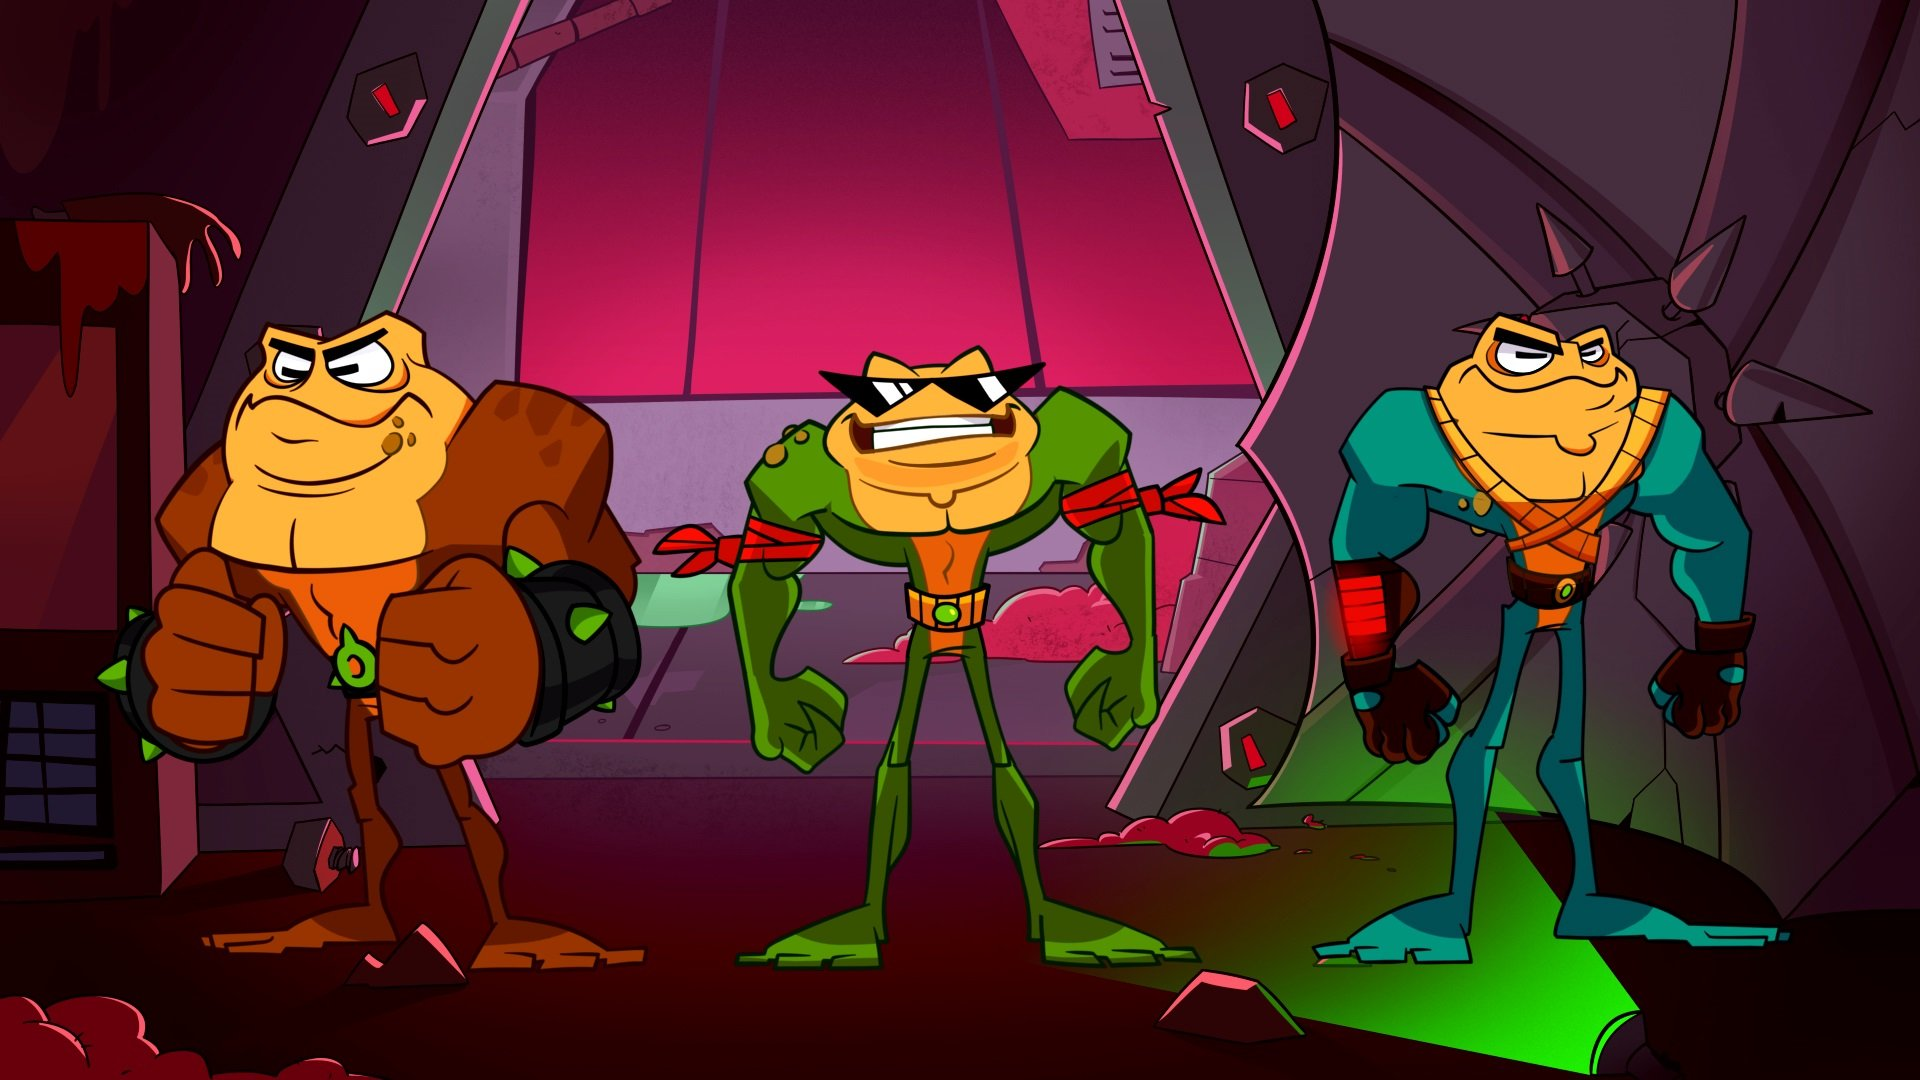 This video doesn't end with the Battletoads beating up Major Nelson screenshot